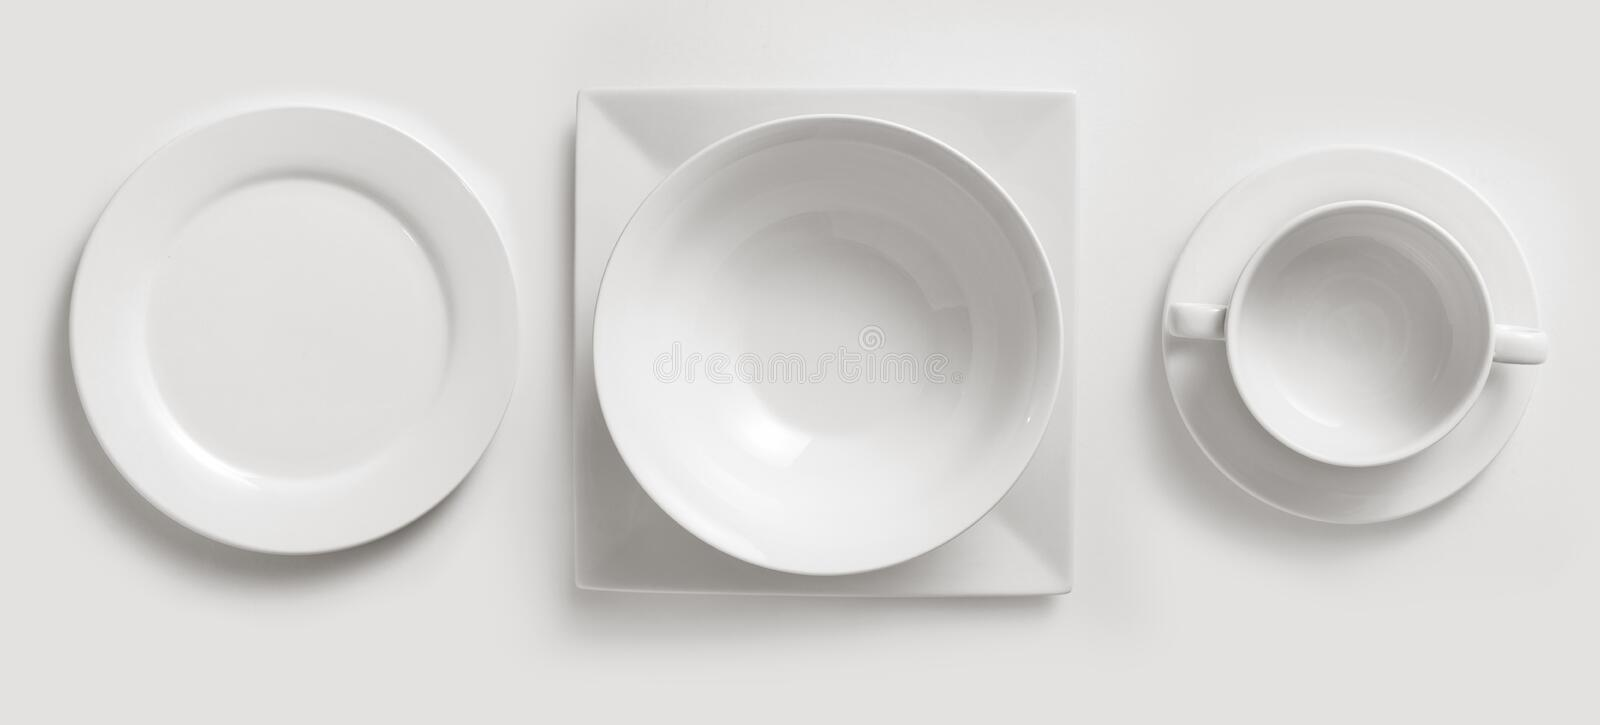 Ceramic Plates & Cup Royalty Free Stock Photo